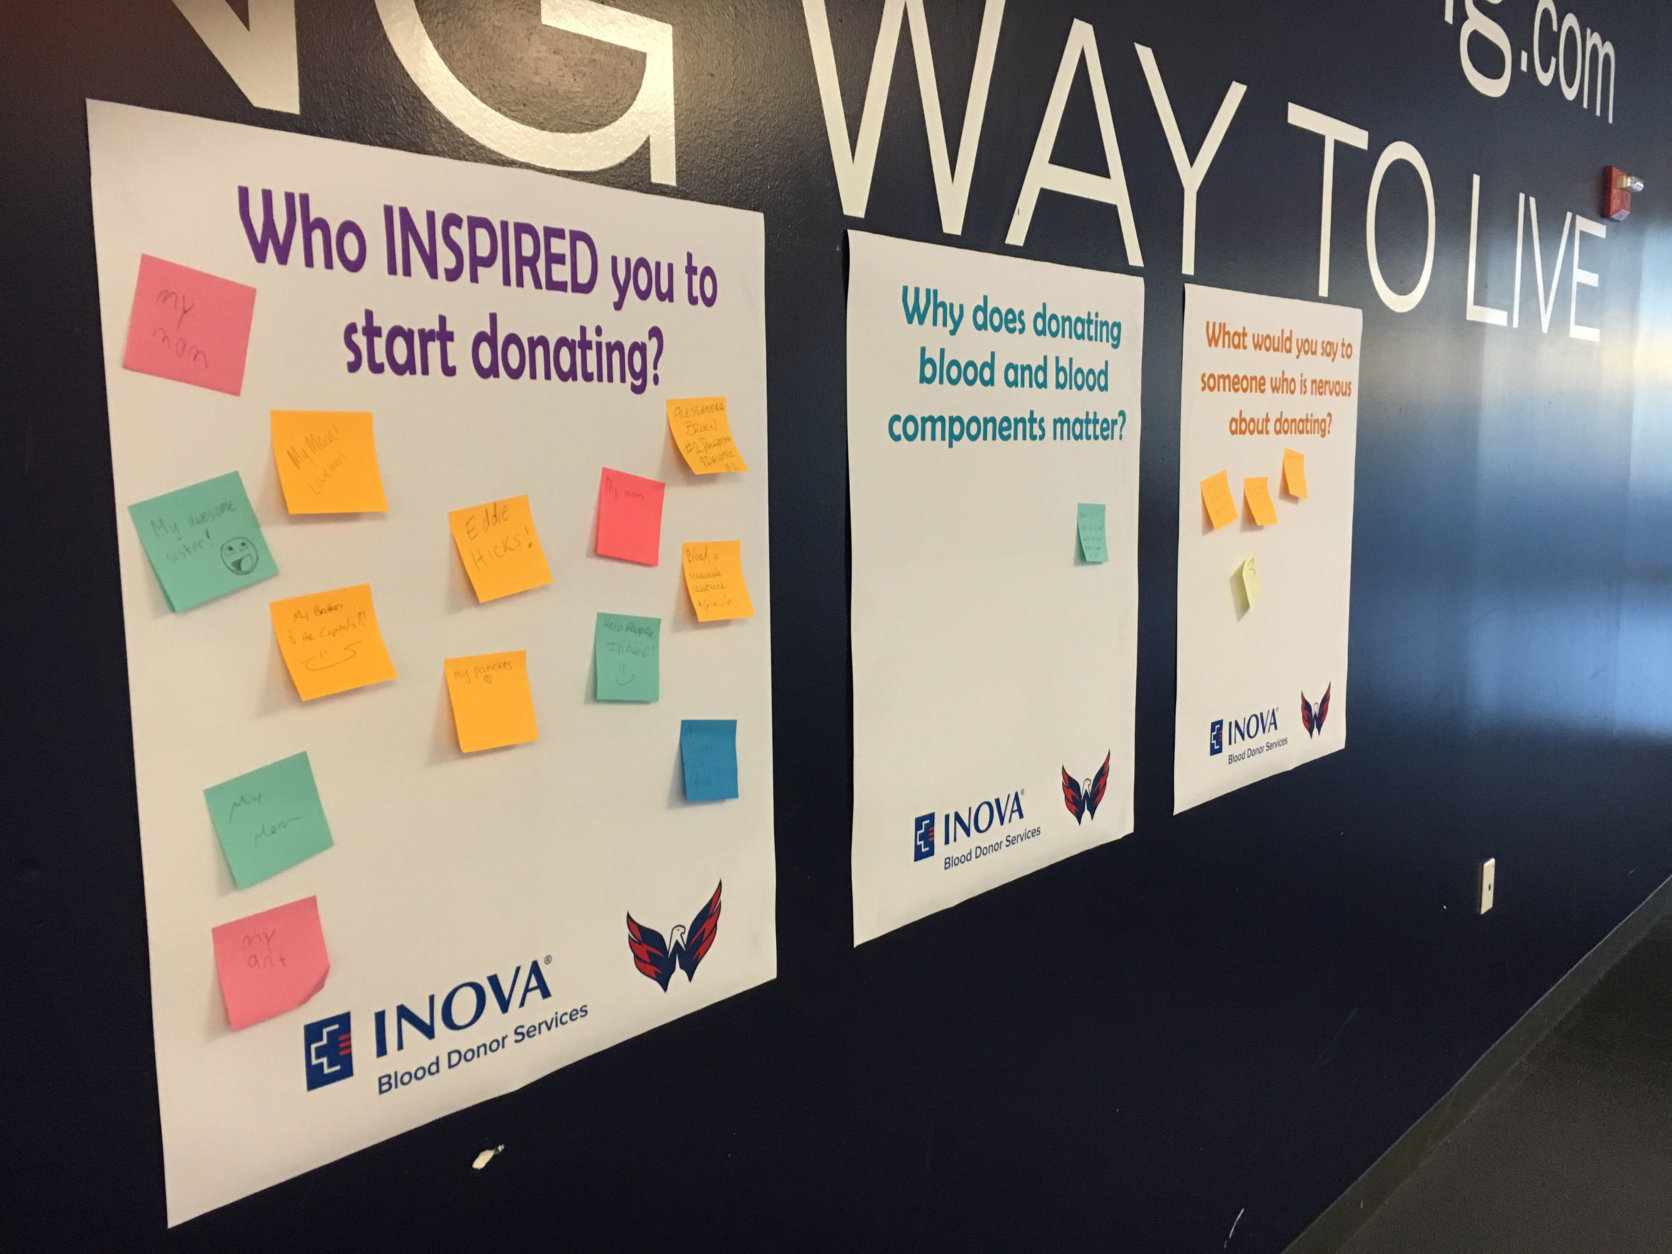 Donors at the Inova Blood Drive at Kettler Capitals Iceplex post their inspiration for giving blood. (WTOP/Keara Dowd)